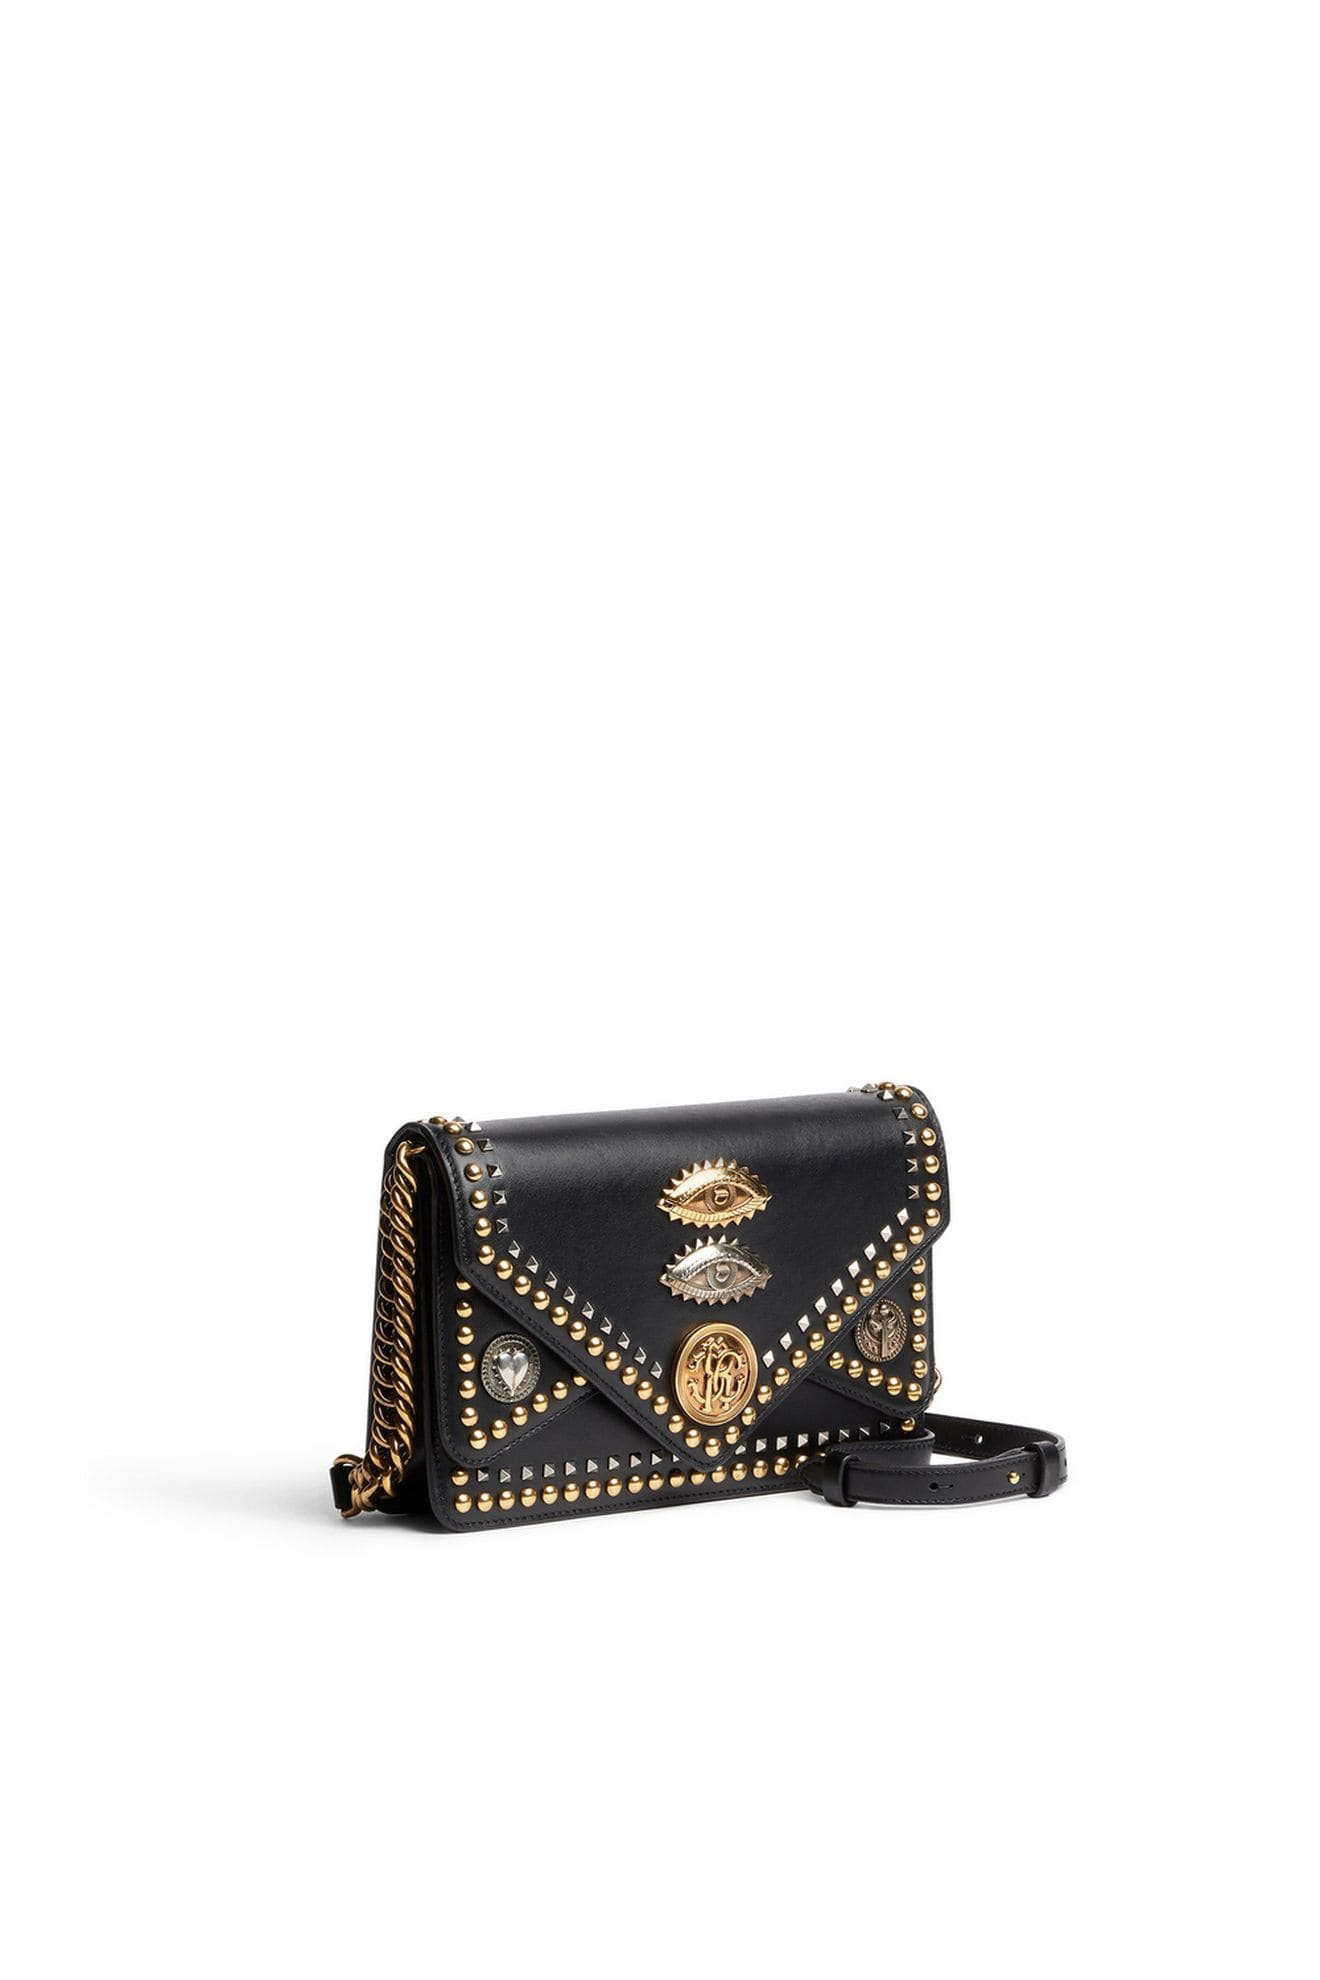 roberto-cavalli-small-shoulder-bag-with-lucky-symbols_13151036_15413926_1320